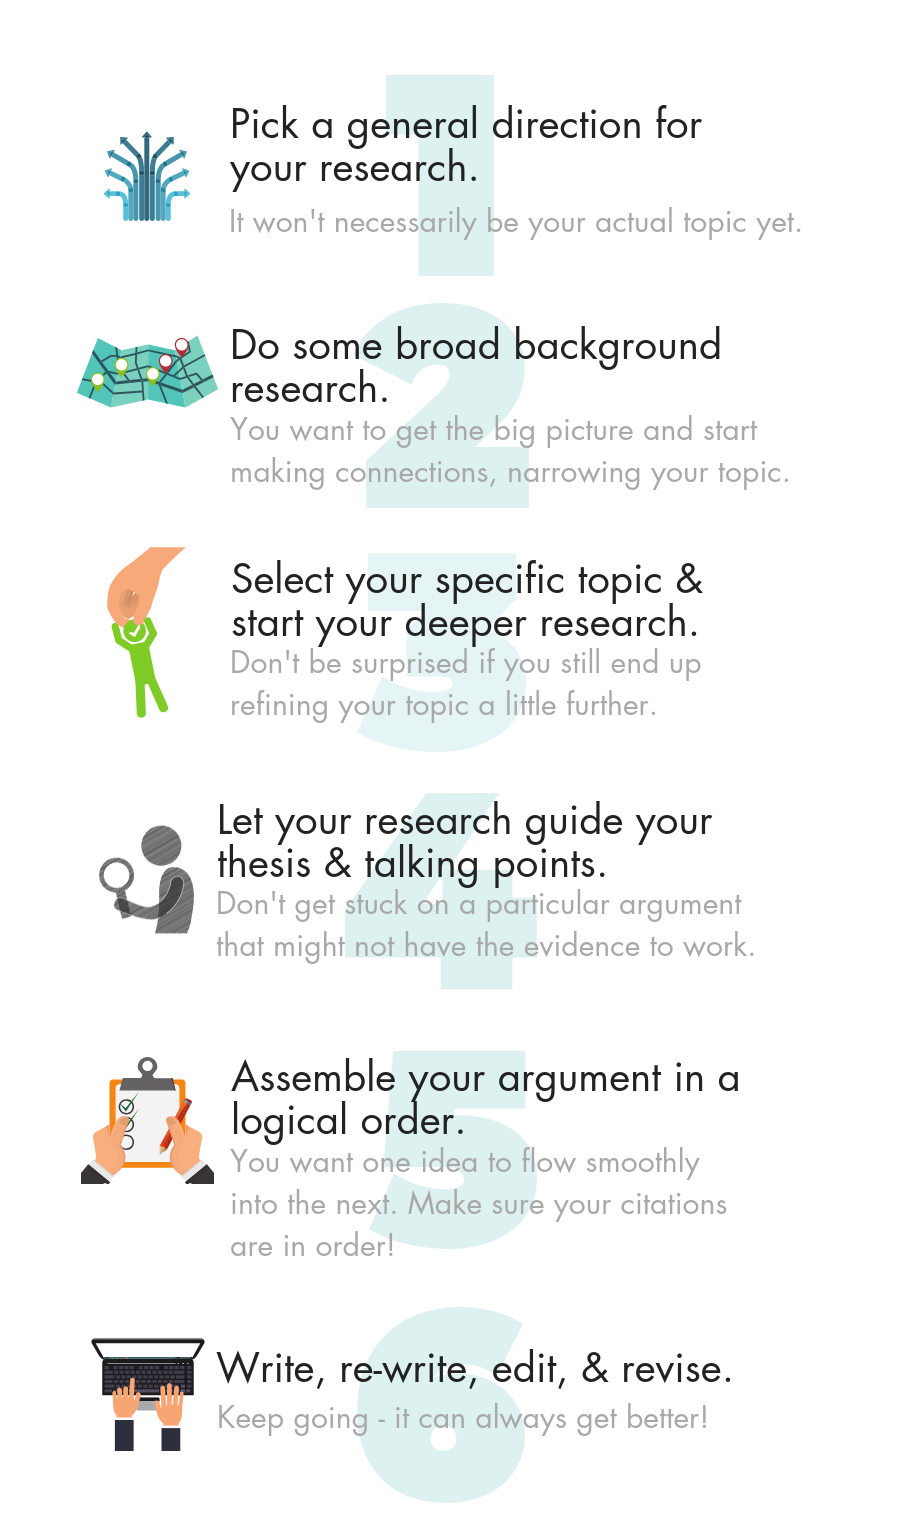 Research process steps: 1, pick a general direction. 2, do some broad background research. 3, Select a specific topic and start your deeper research. 4, Let your research results guide your thesis and talking points. 5, Assemble your argumetn and evidence into a logical order. 6, Write, re-write, edit, and revise.